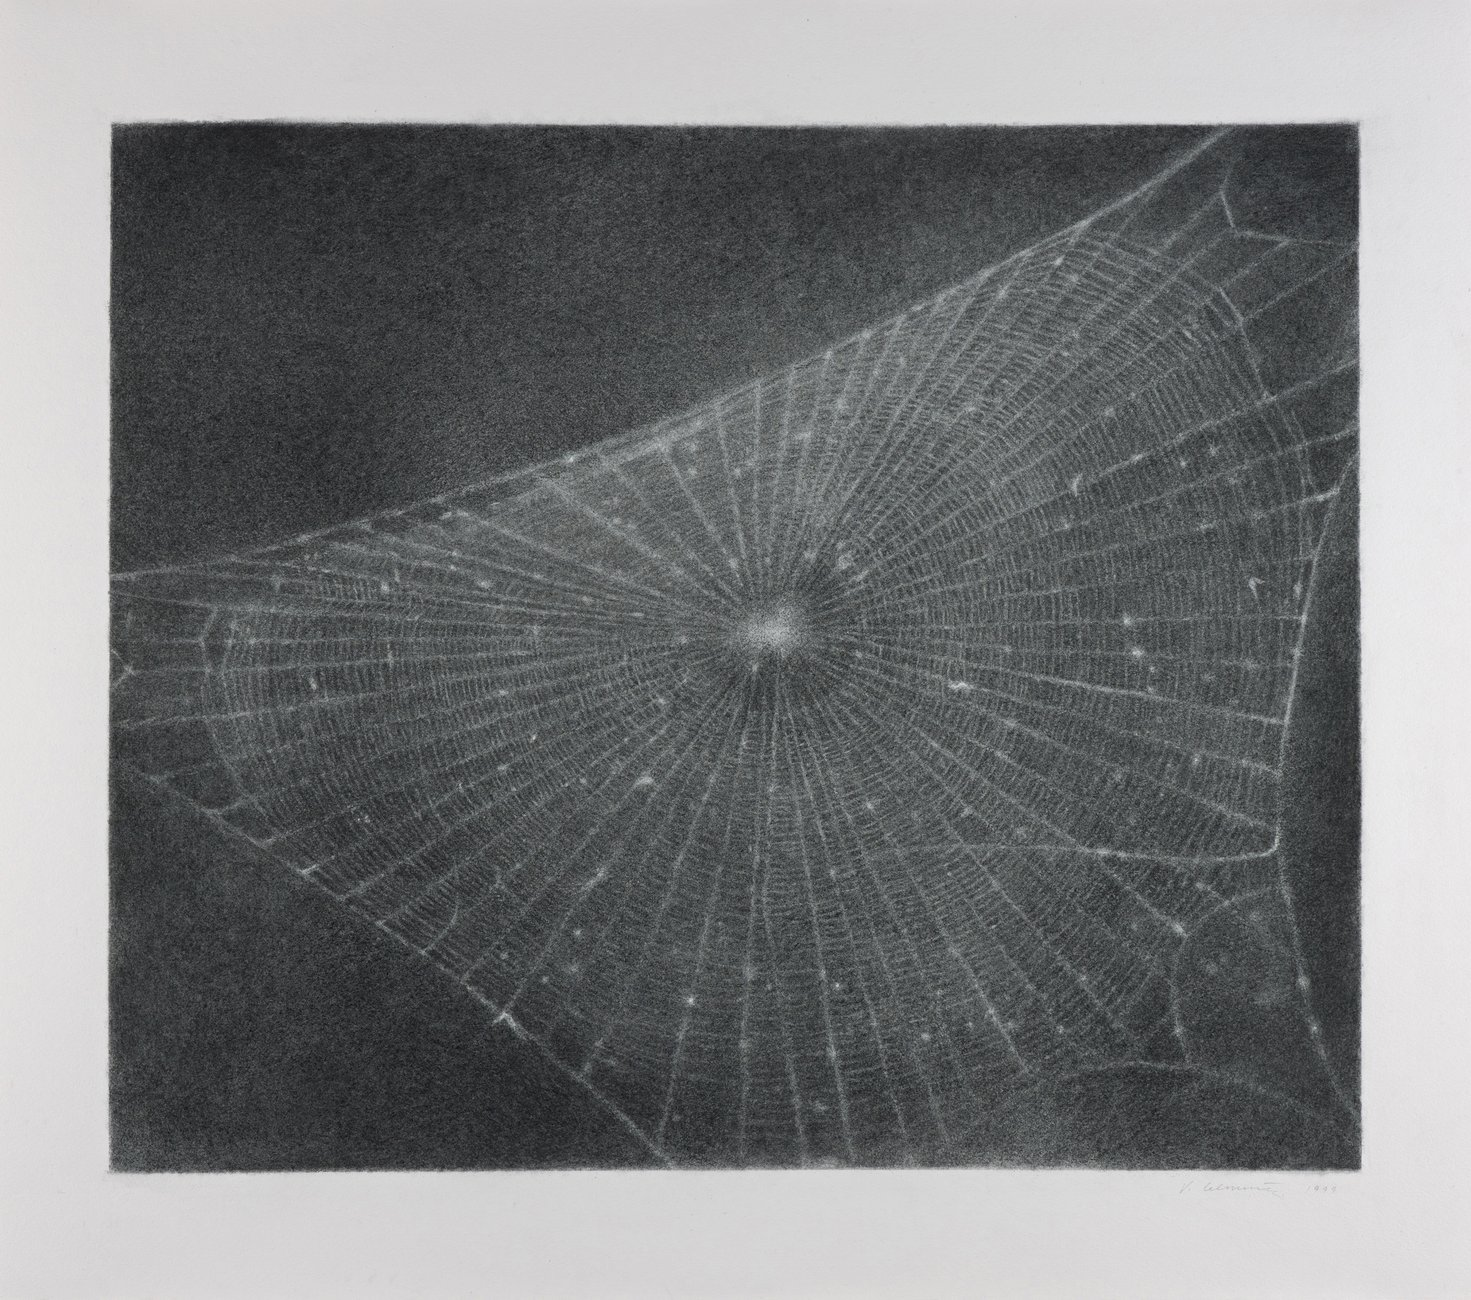 black and white drawing of a spider web